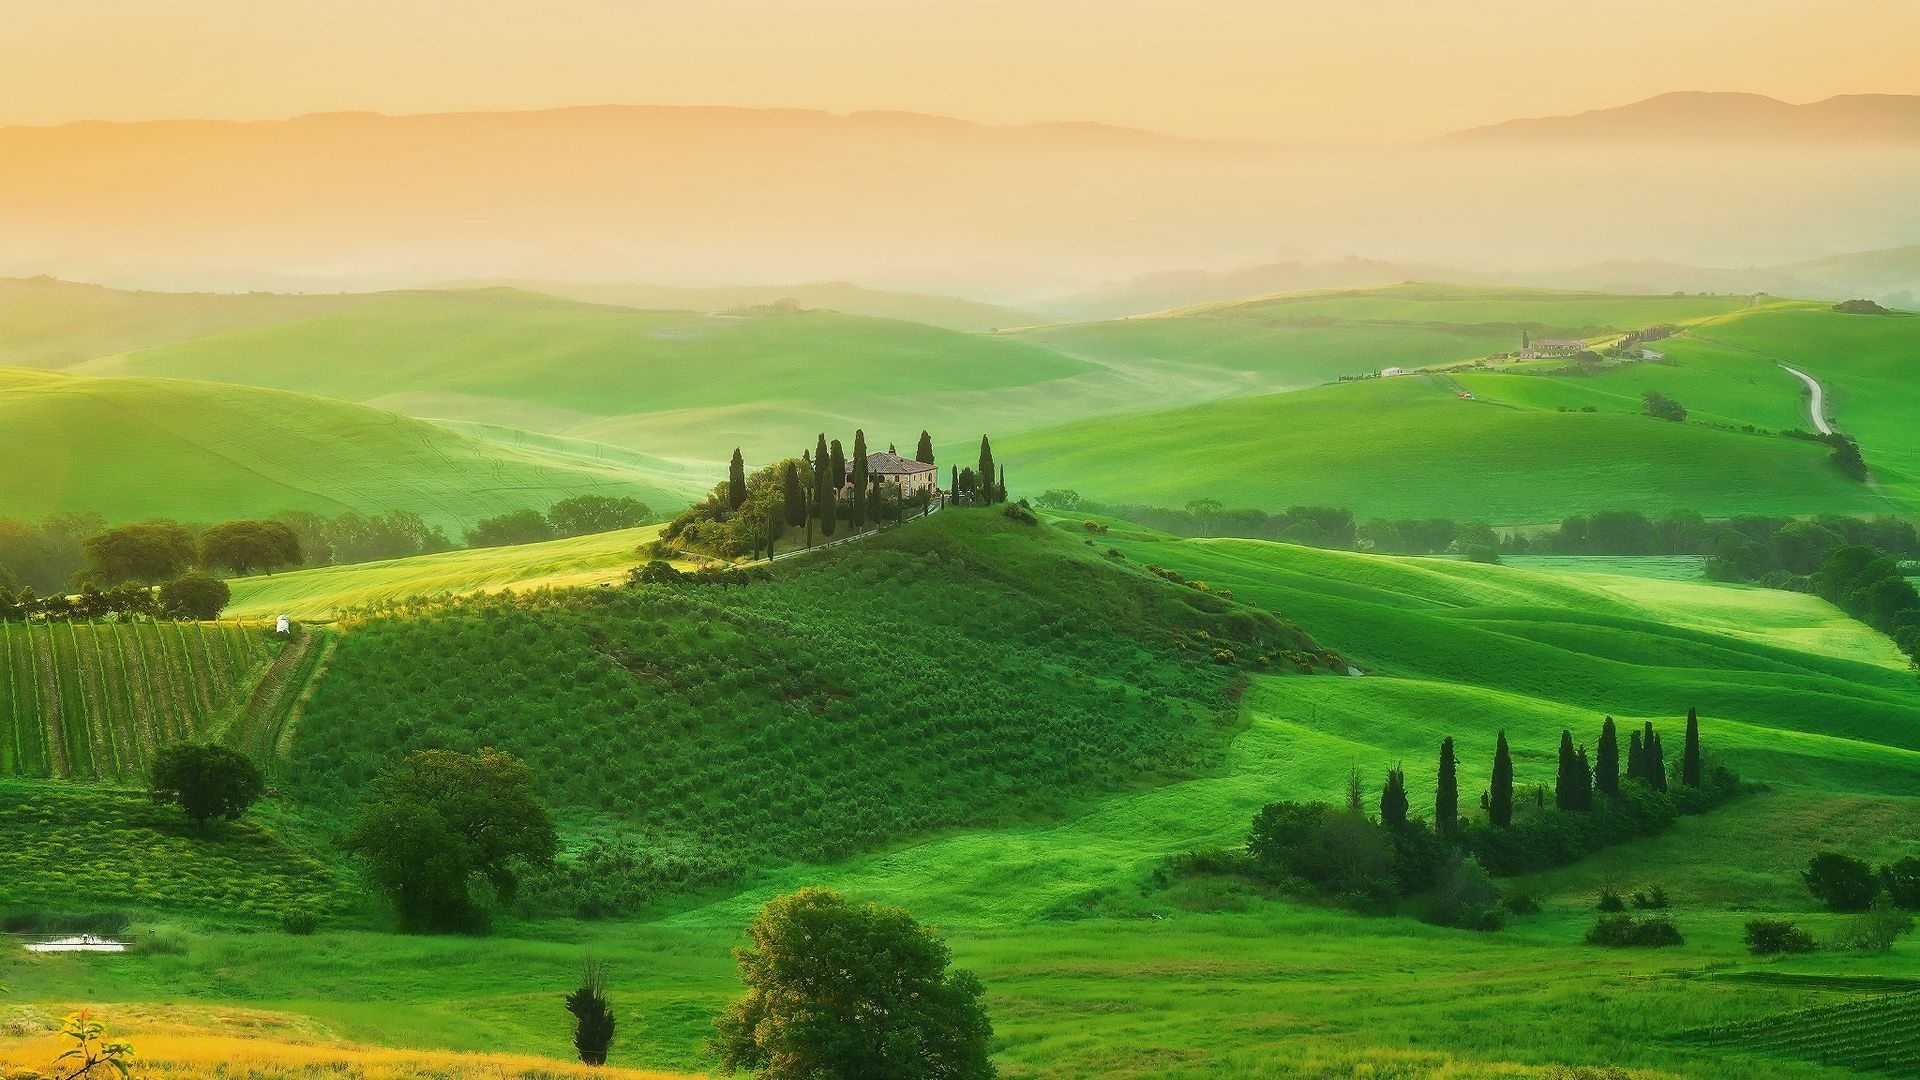 Tuscany 1080p wallpaper